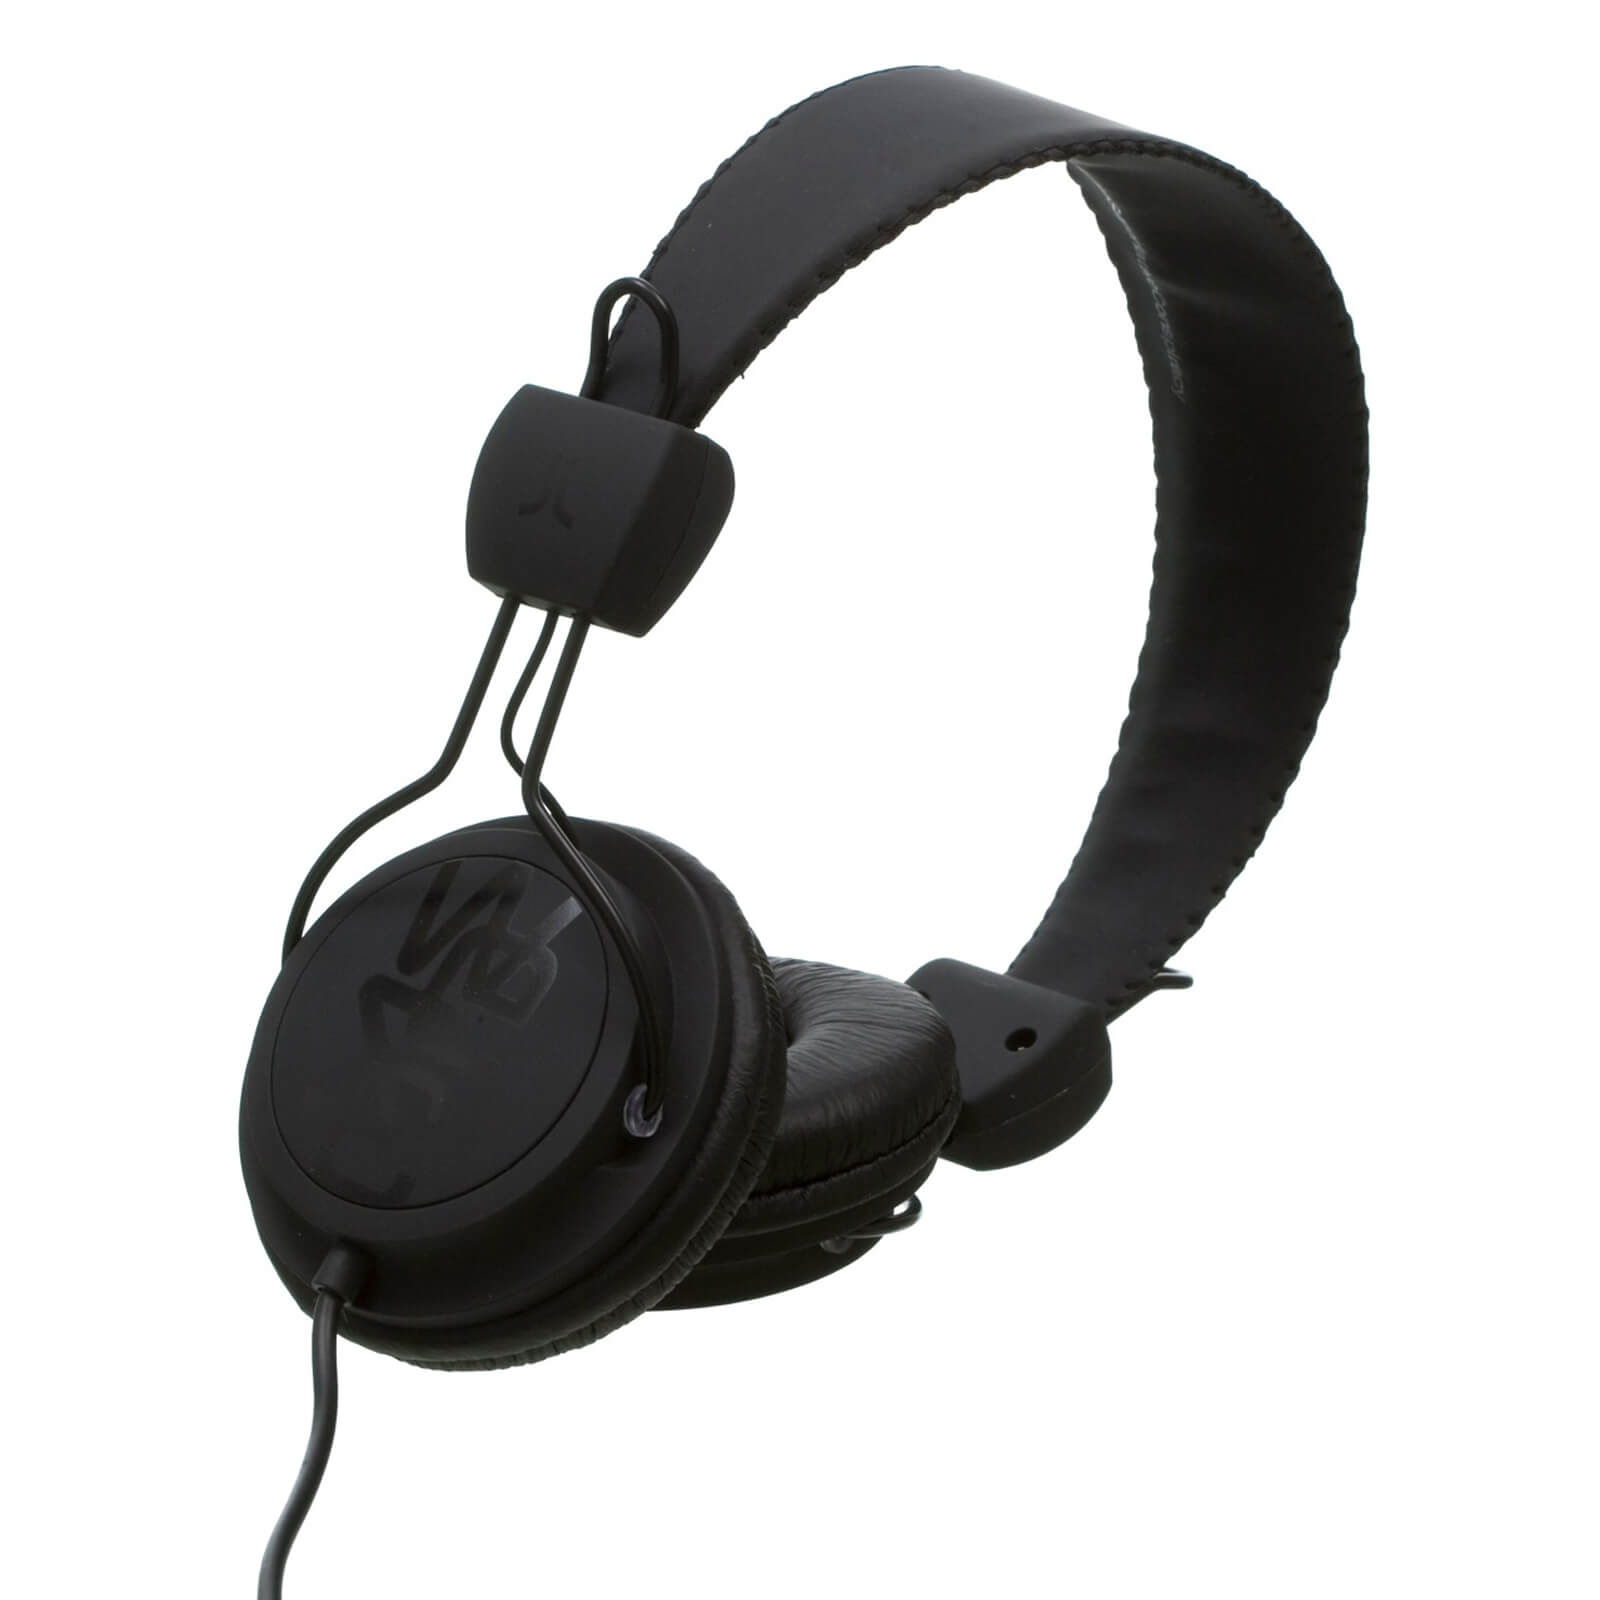 Wesc Conga Headphones - Black USED